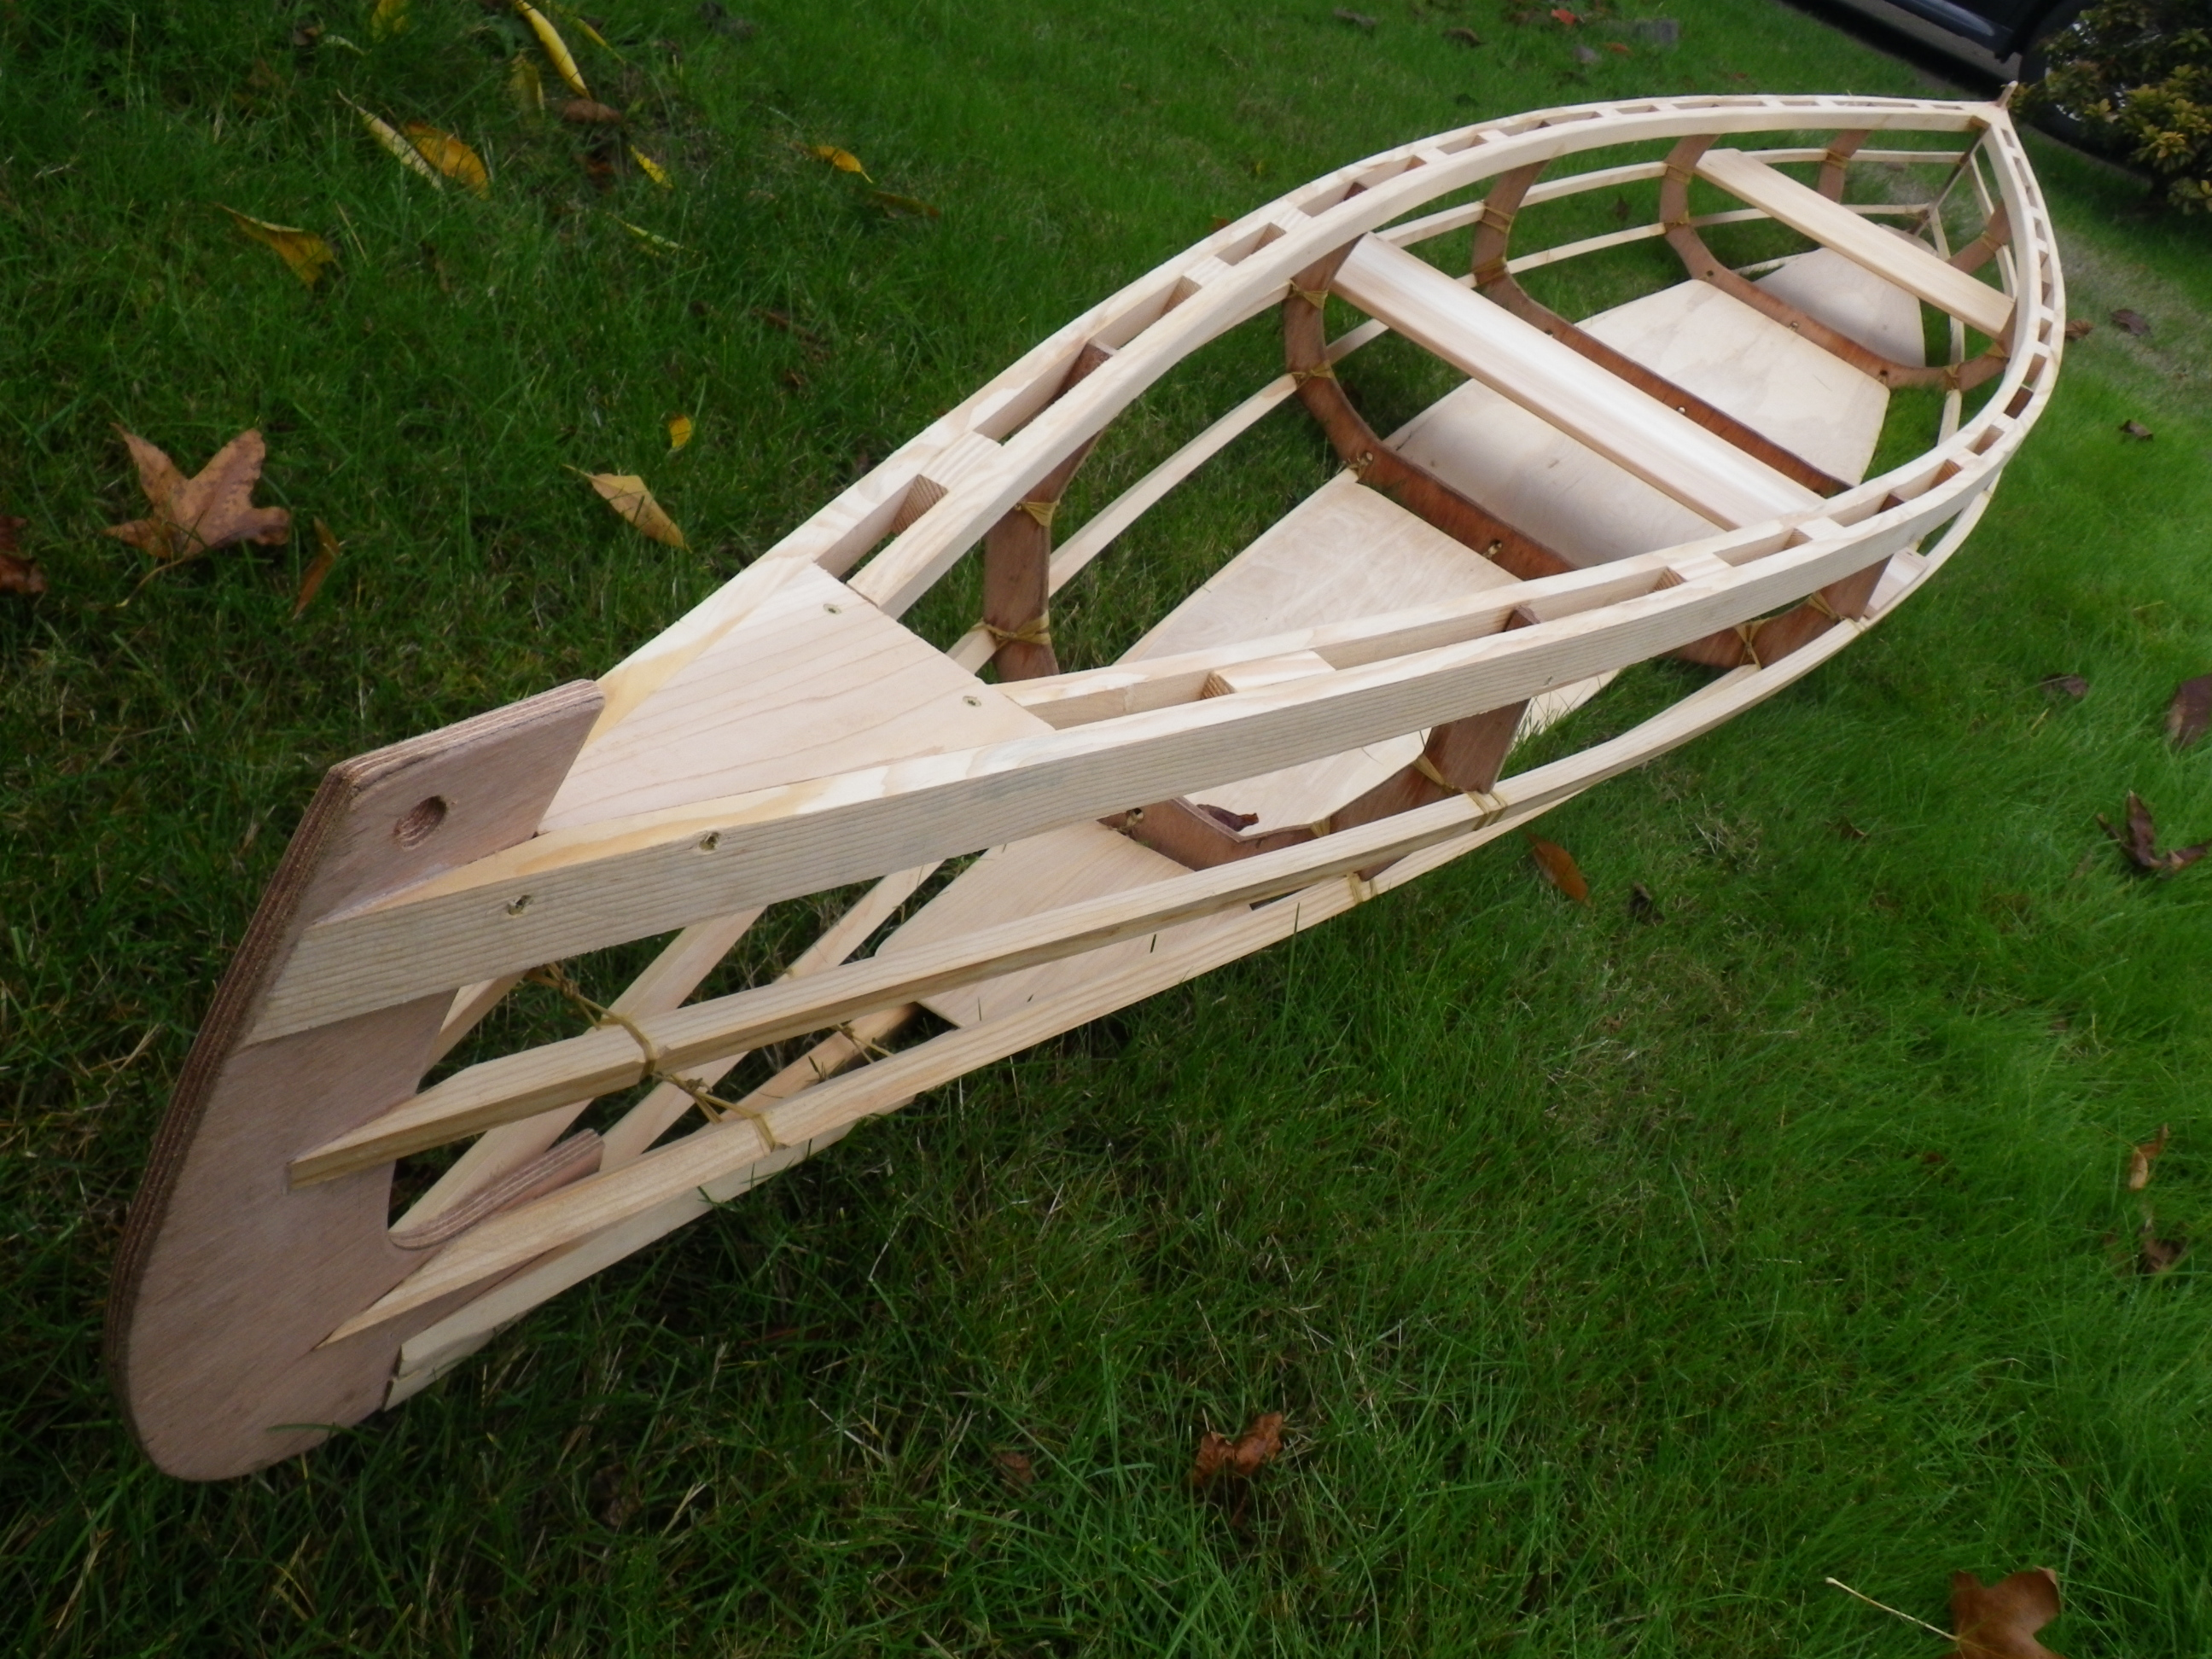 i made this one out of relatively heavy 12 hydrotek for the stems and frames and very green doug fir for the wales stringers and keel